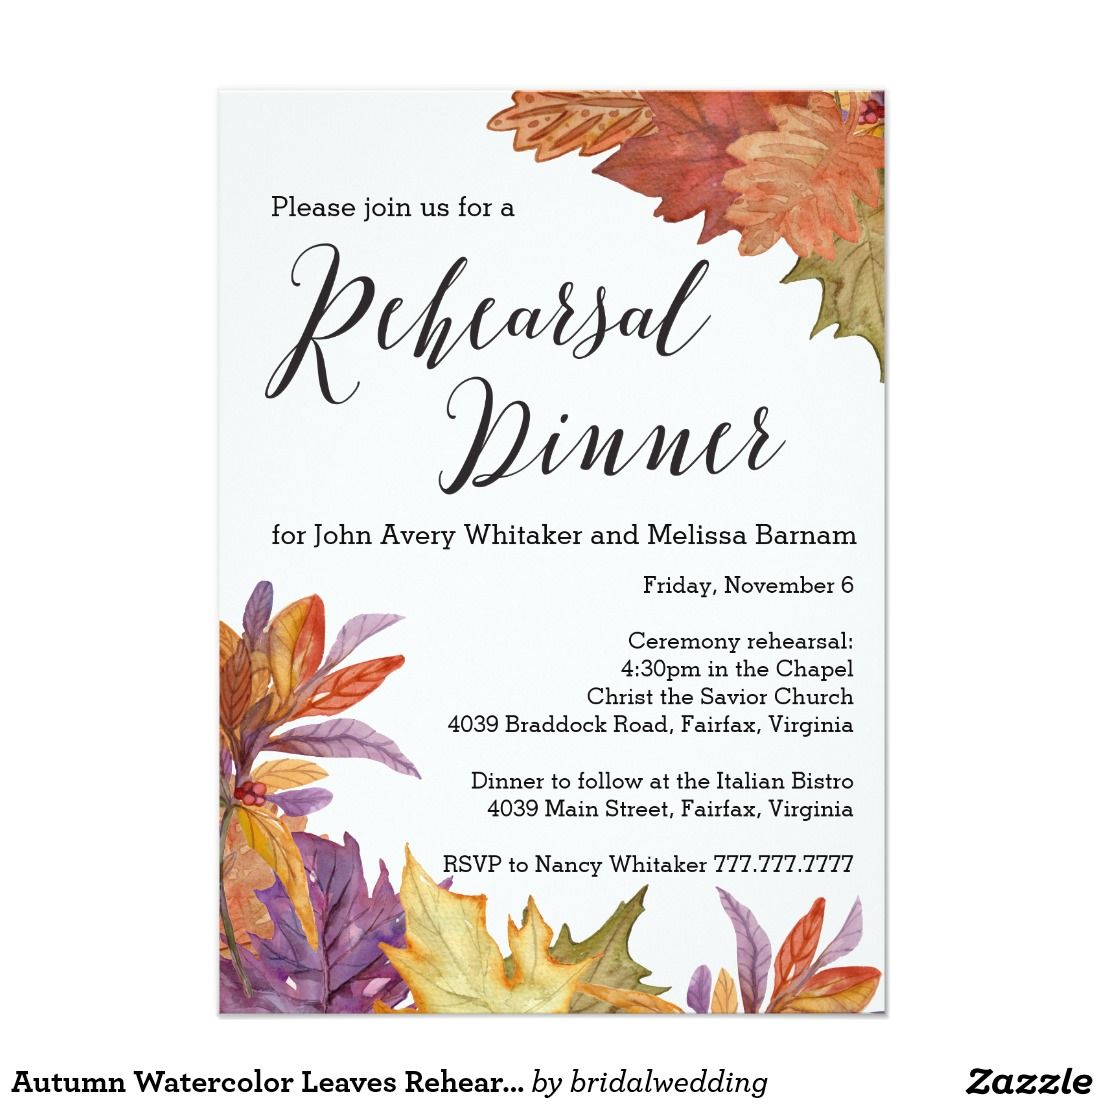 Autumn Watercolor Leaves Rehearsal Dinner Card Watercolor Leaves